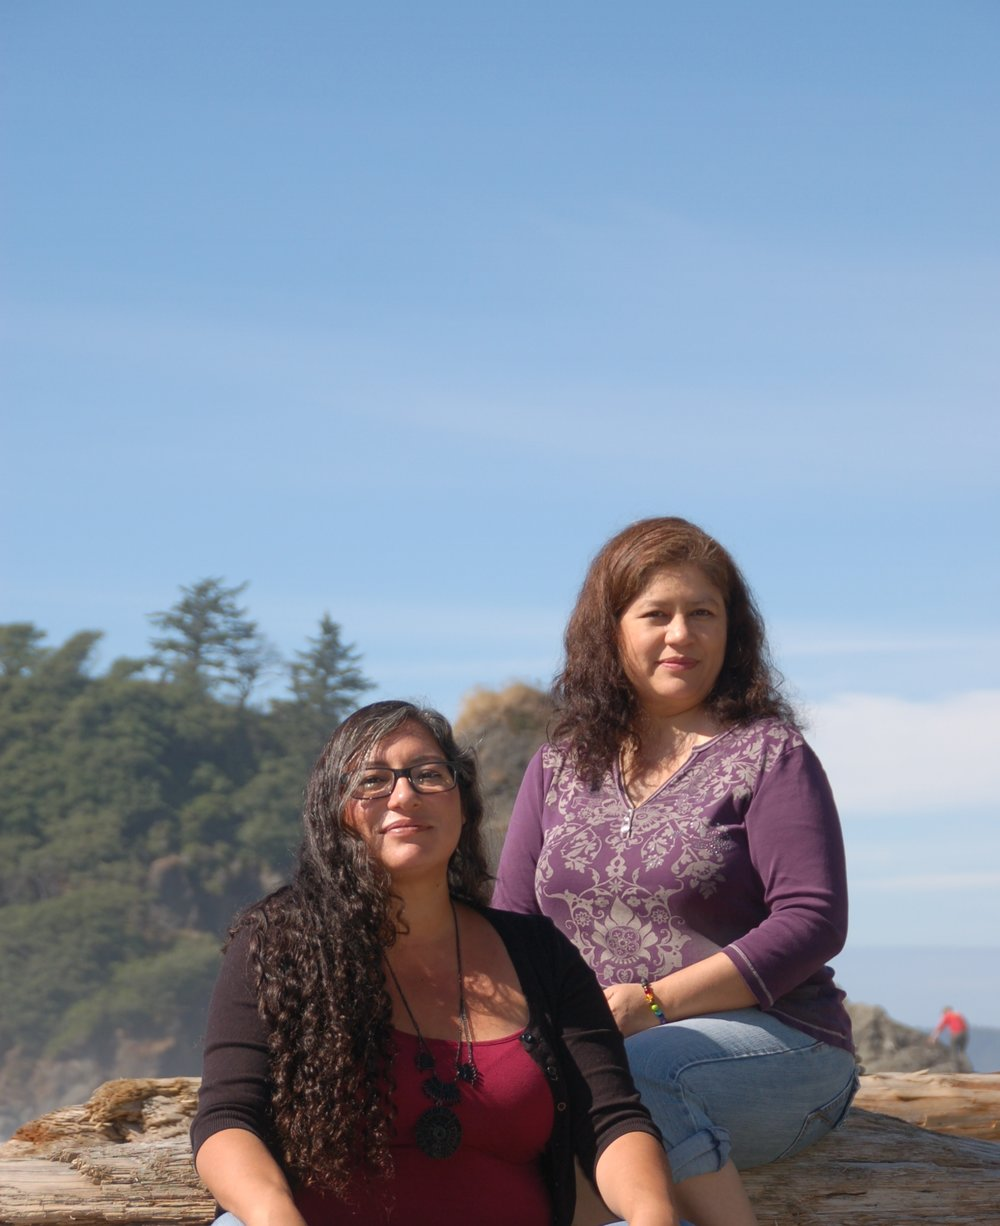 Us at Ruby Beach